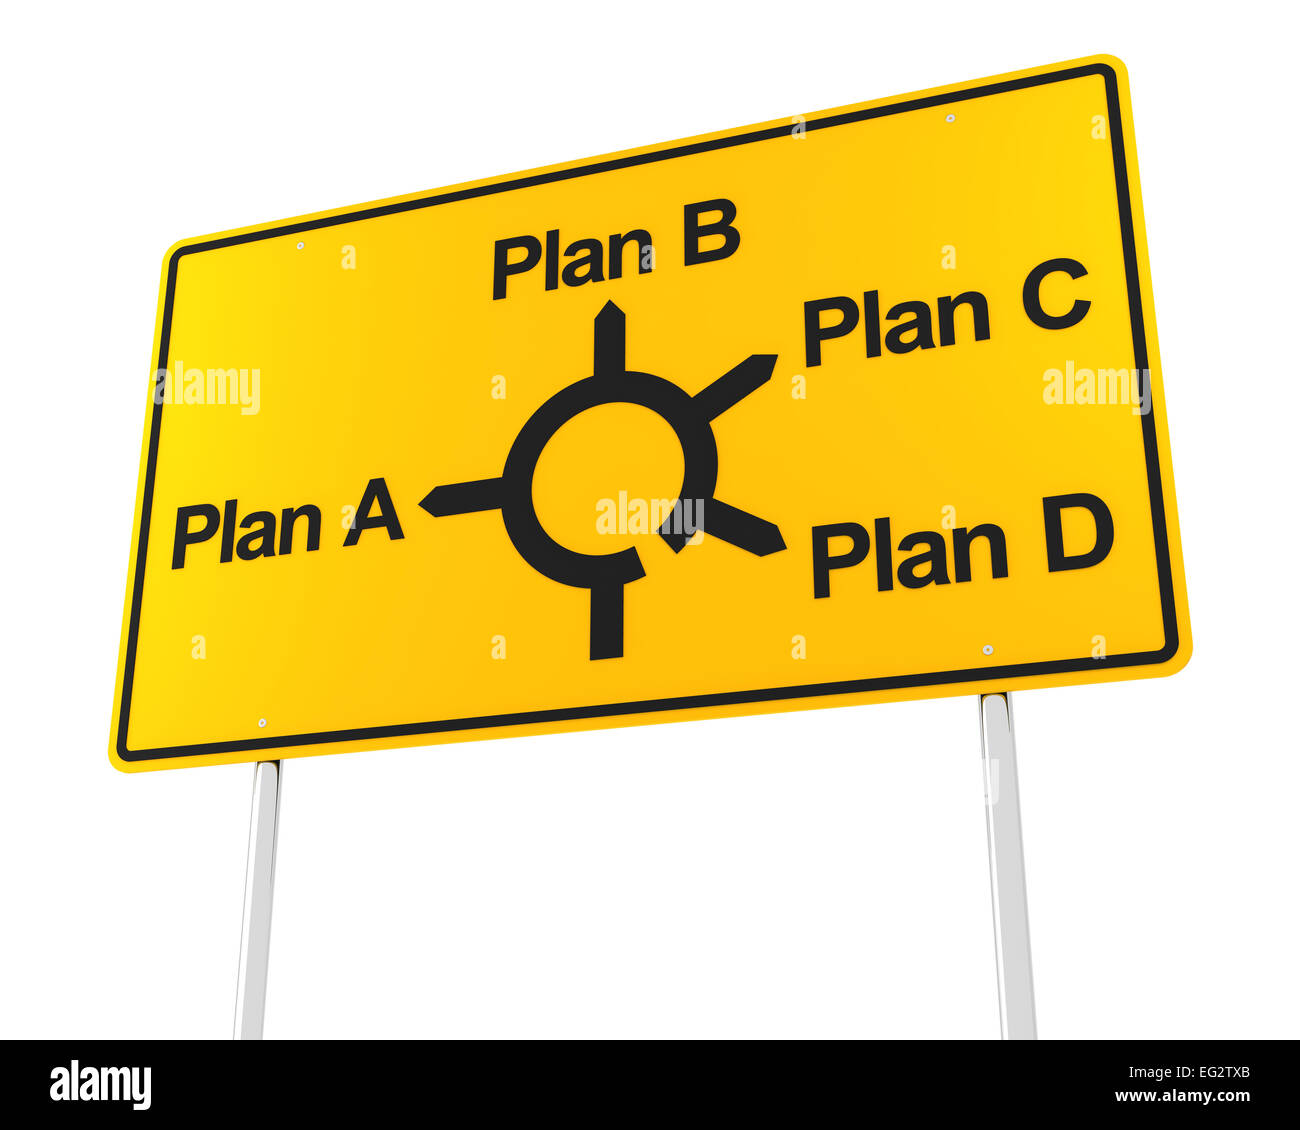 Road sign with options for different plans - Stock Image